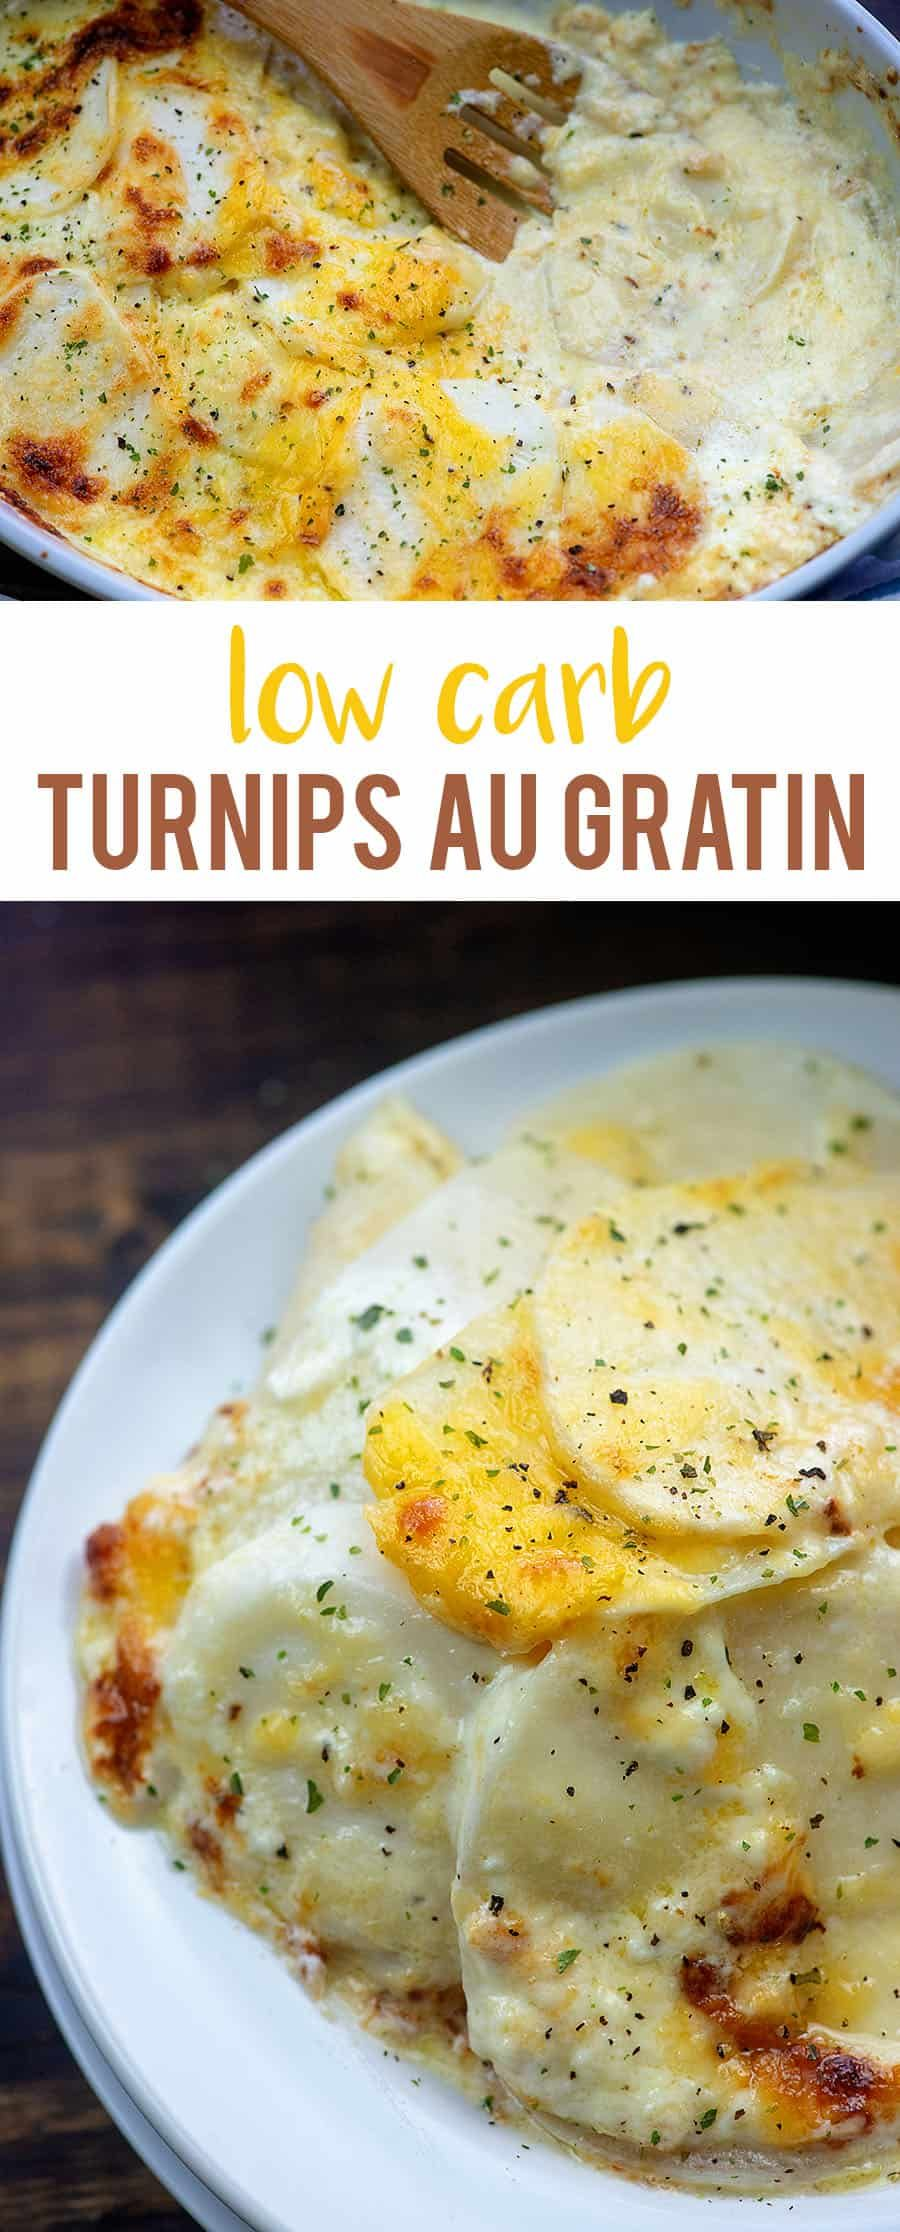 Low Carb Turnips au Gratin! Perfect side dish for a holiday dinner! #recipe #Easter #holidays #lowcarb #keto #dinnersidedishes